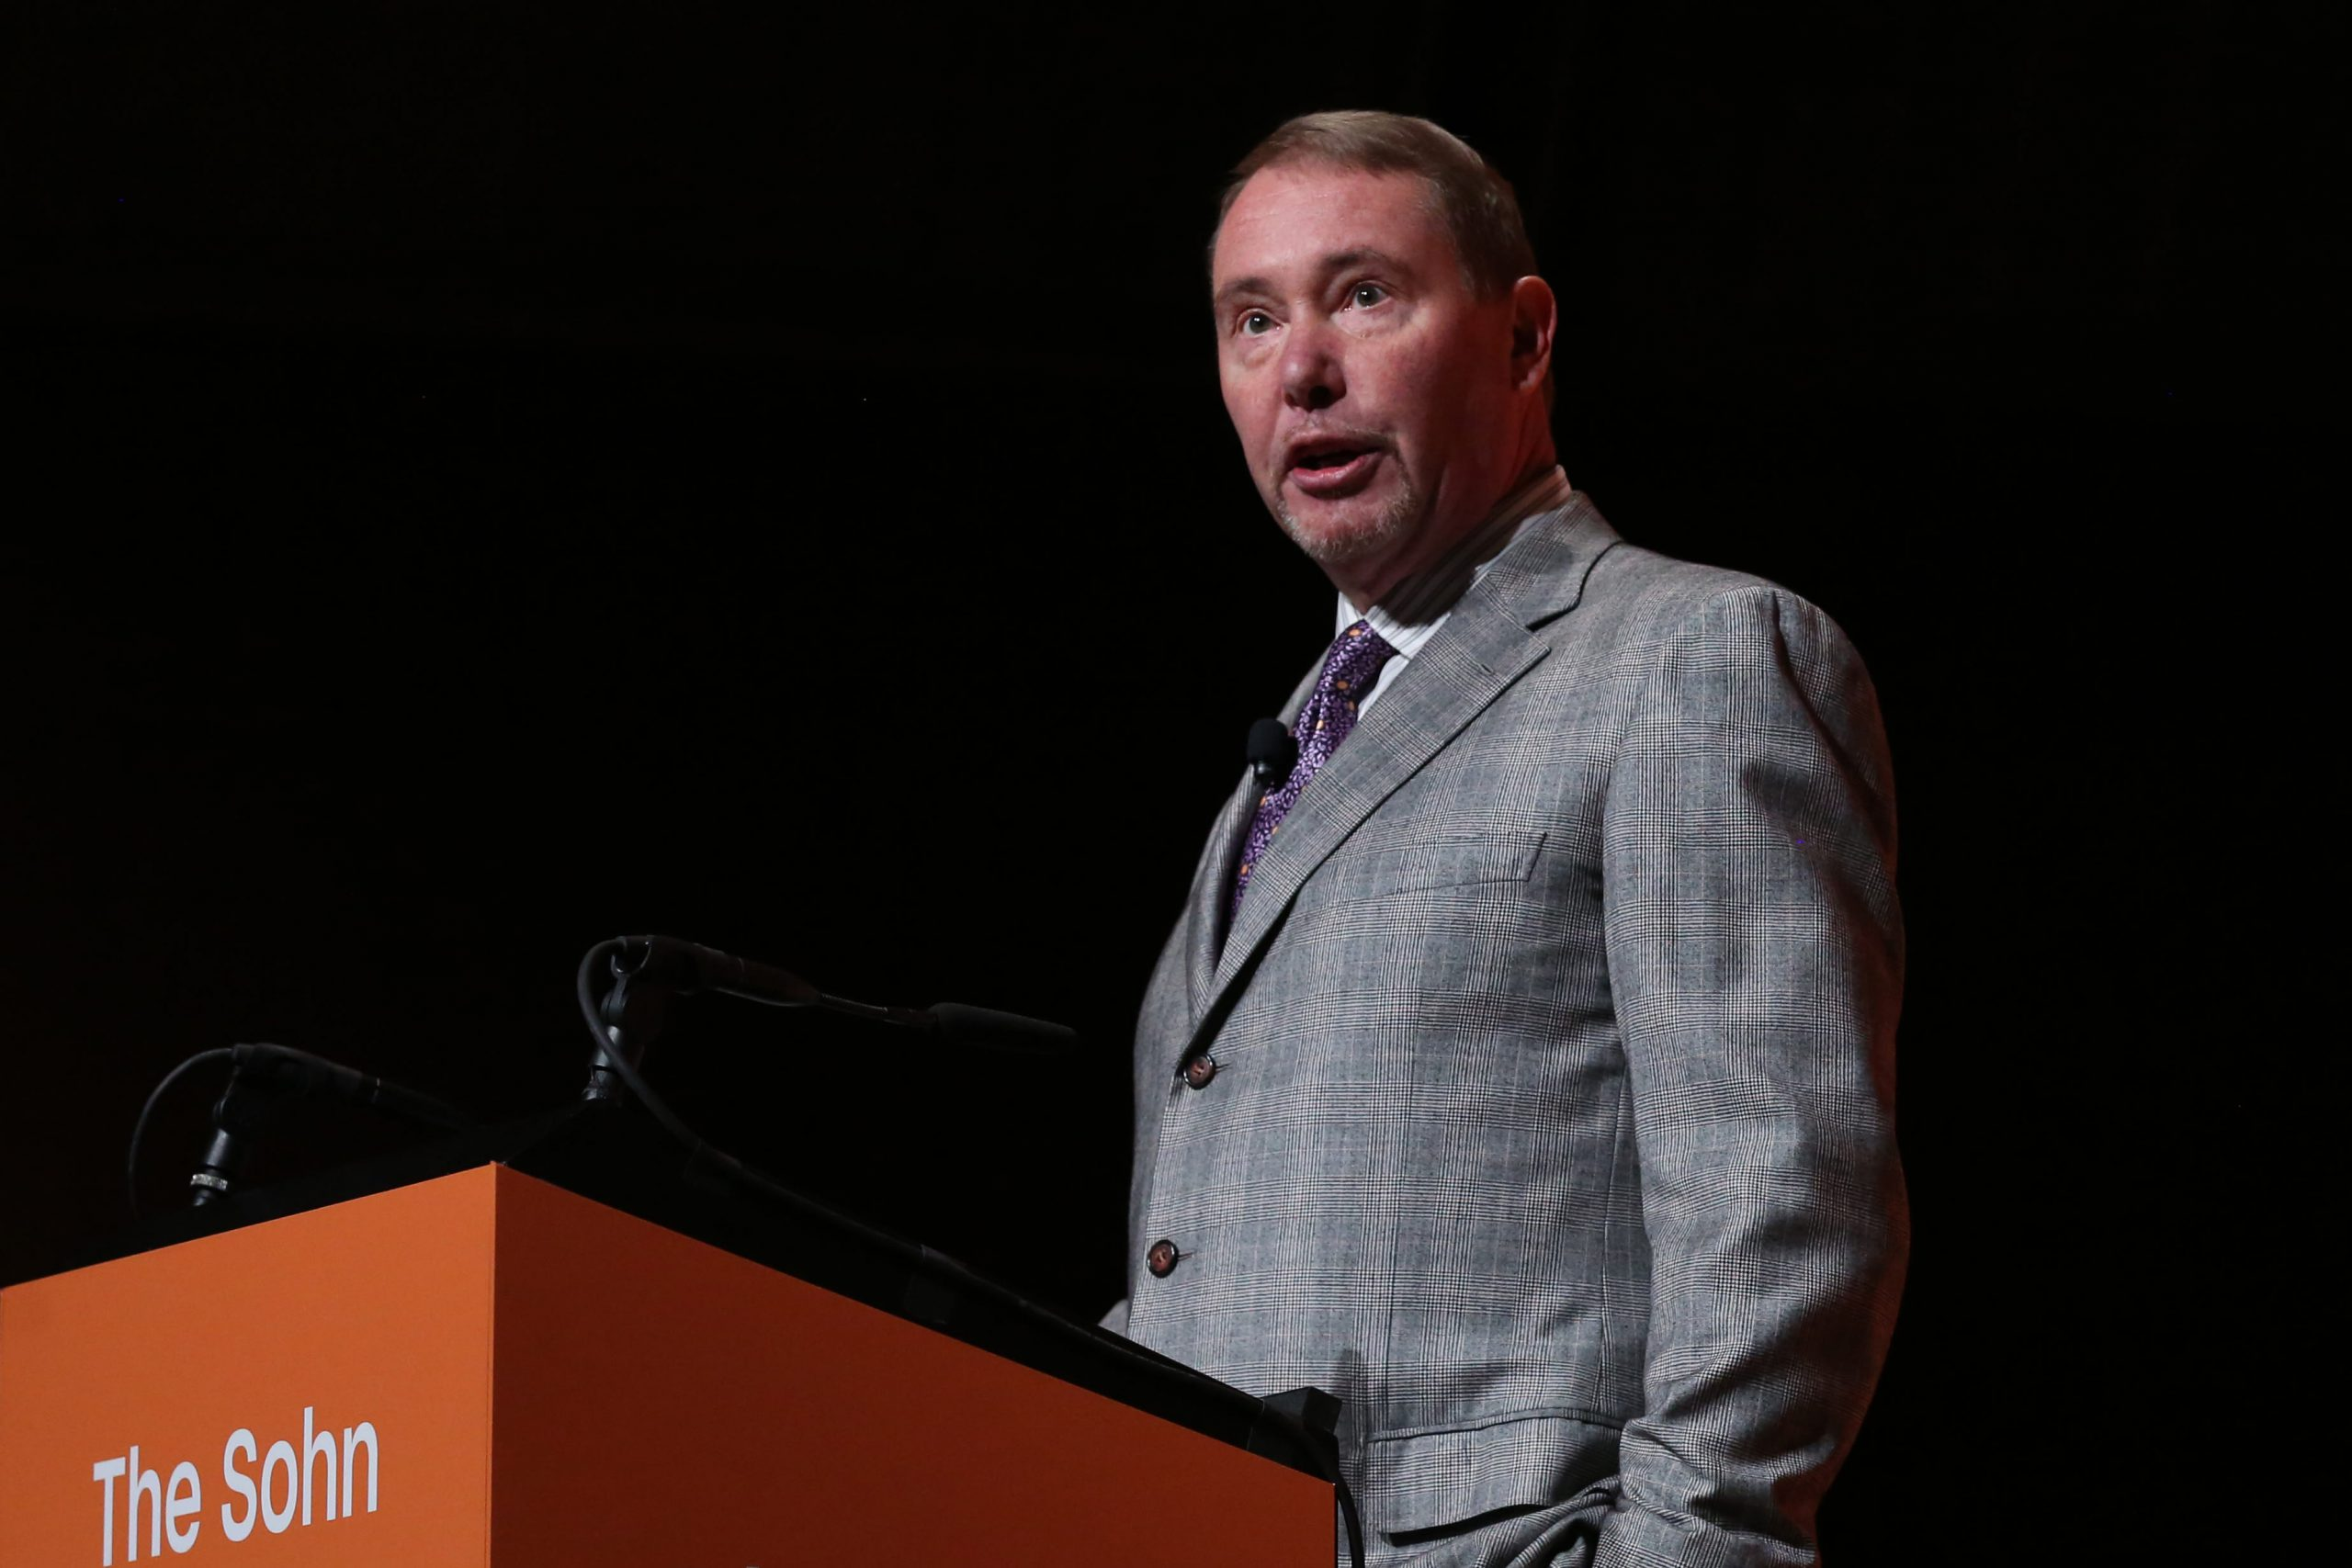 Gundlach sees 10-year yield jumping above 2% because the Fed is 'cheerleading inflation higher'